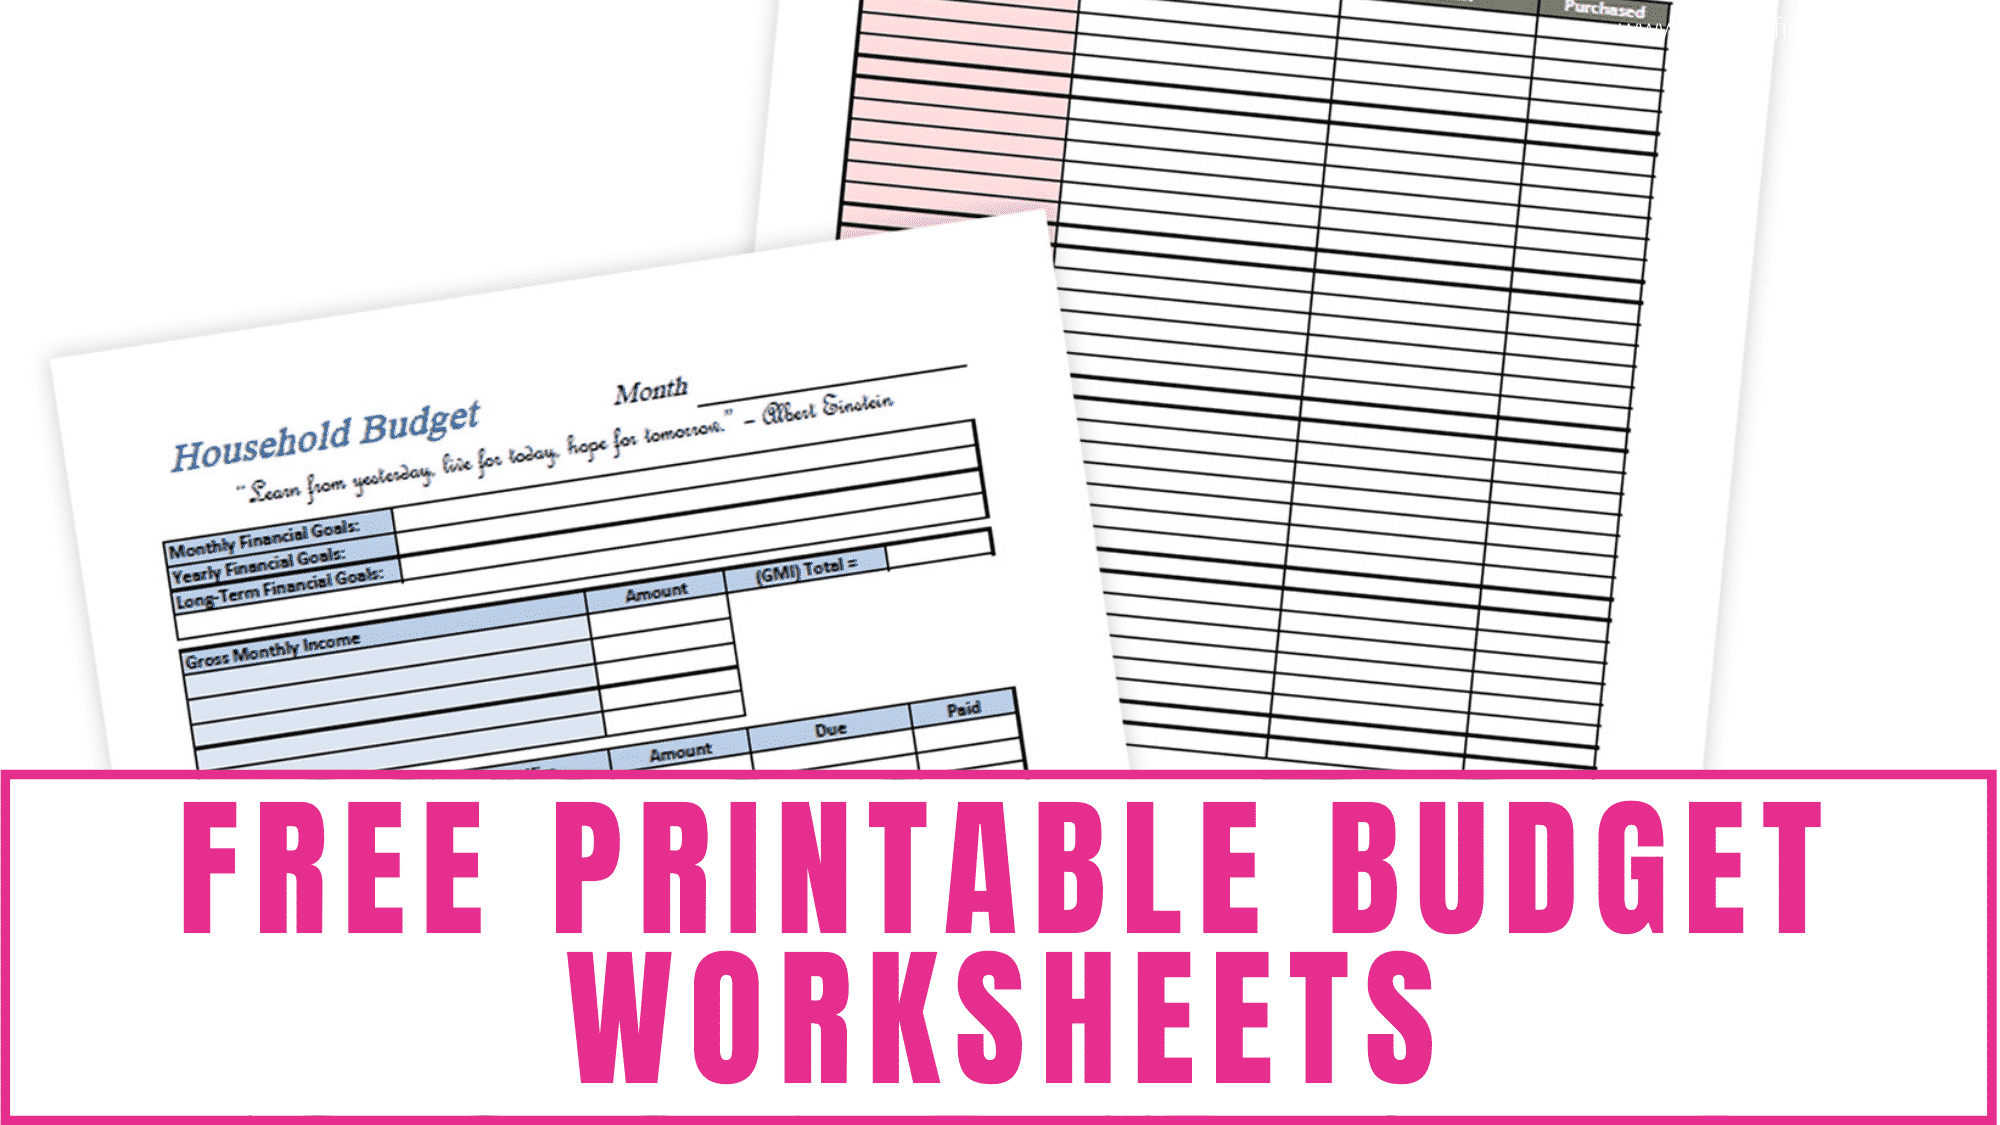 Budgeting spreadsheets don't have to be complicated. Some of the best budgeting worksheets are simple and easy to use like these free printable budget worksheets. Keeping them simple means you are more likely to continue using it thus resulting in a higher probability of reaching your budgeting goals.